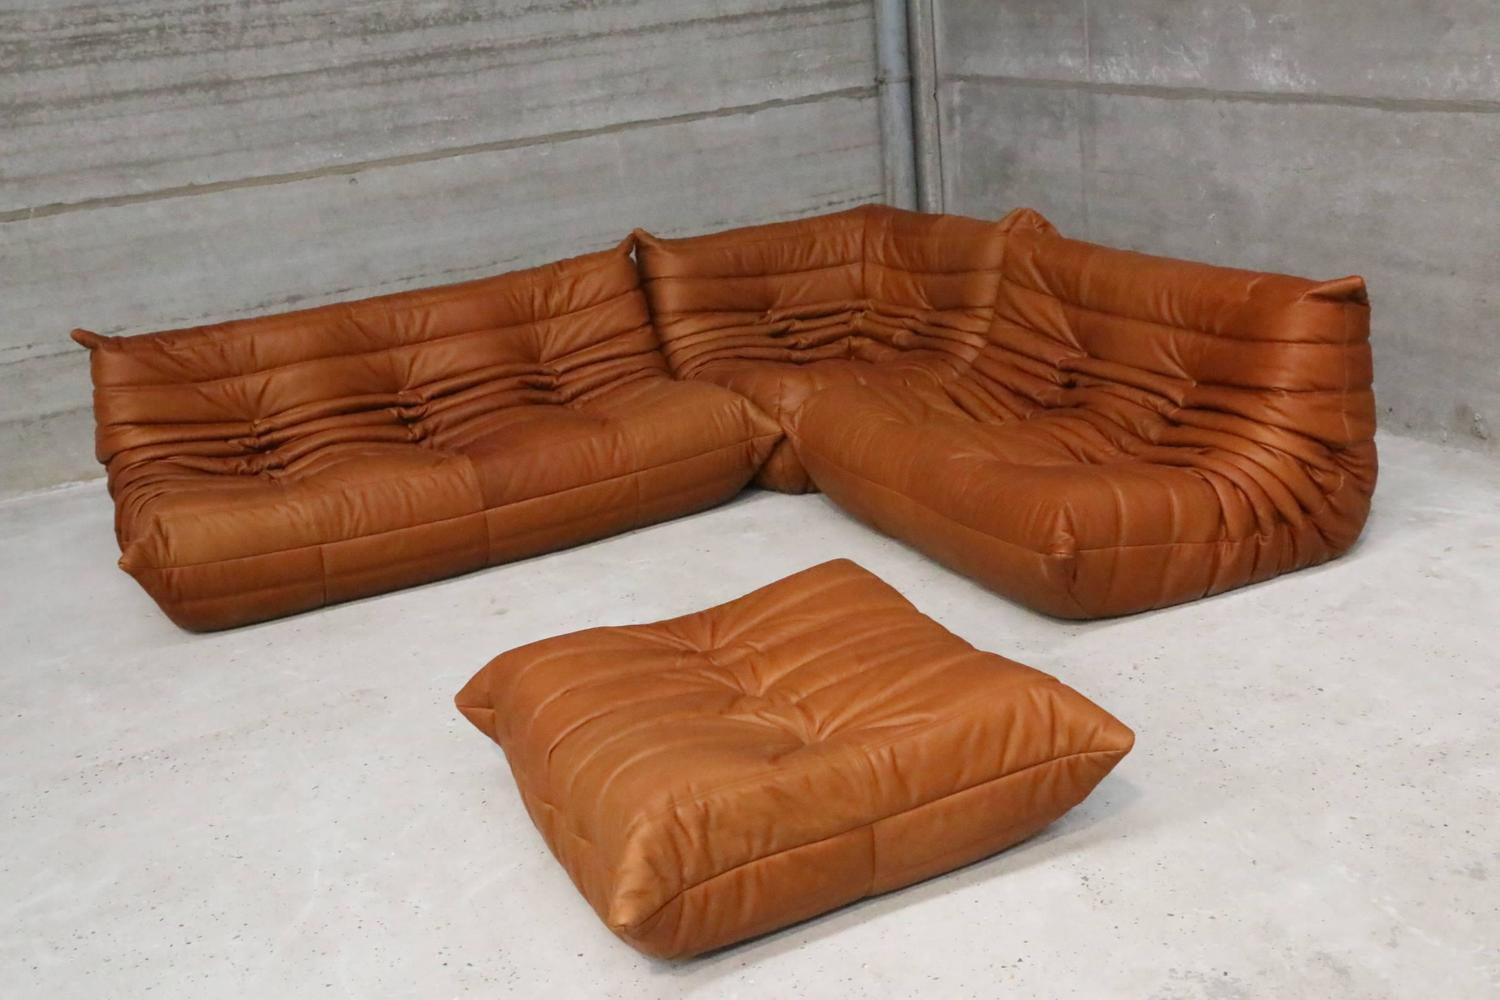 cognac leather ligne roset togo sofa set designed in 1973 by michel ducaroy at 1stdibs. Black Bedroom Furniture Sets. Home Design Ideas